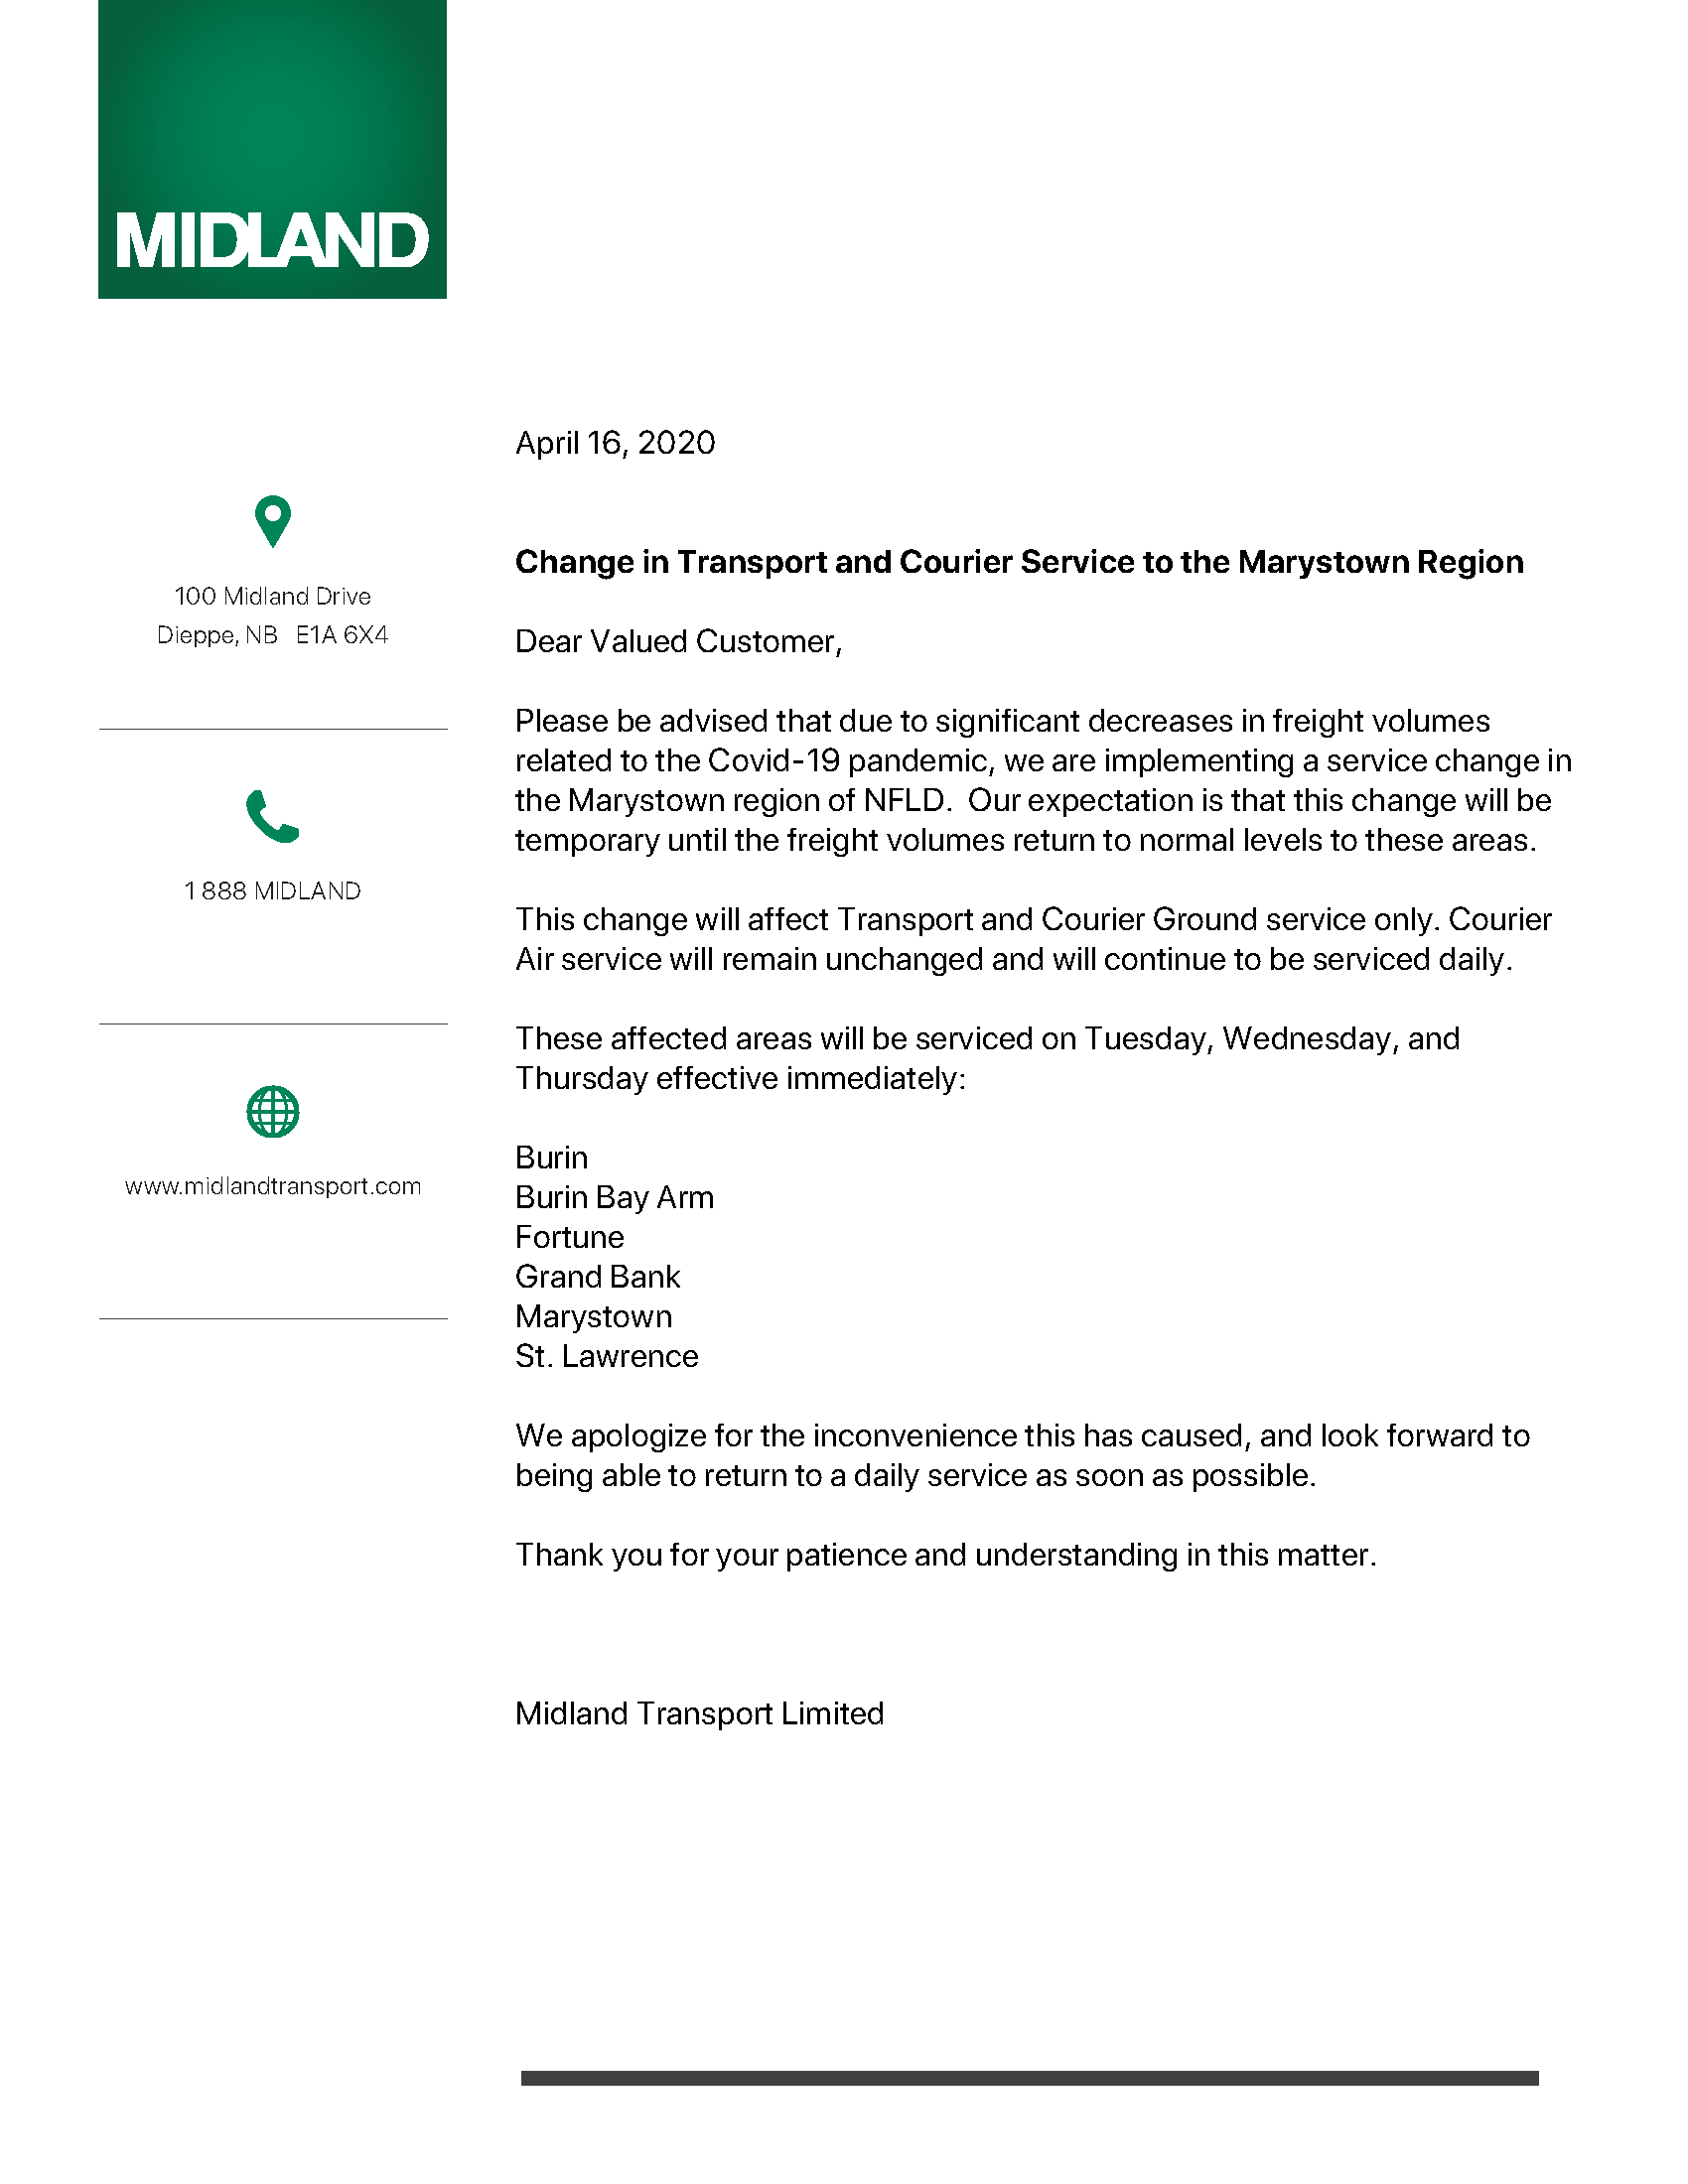 Change in Transport and Courier Service to the Marystown Region - April 15, 2020